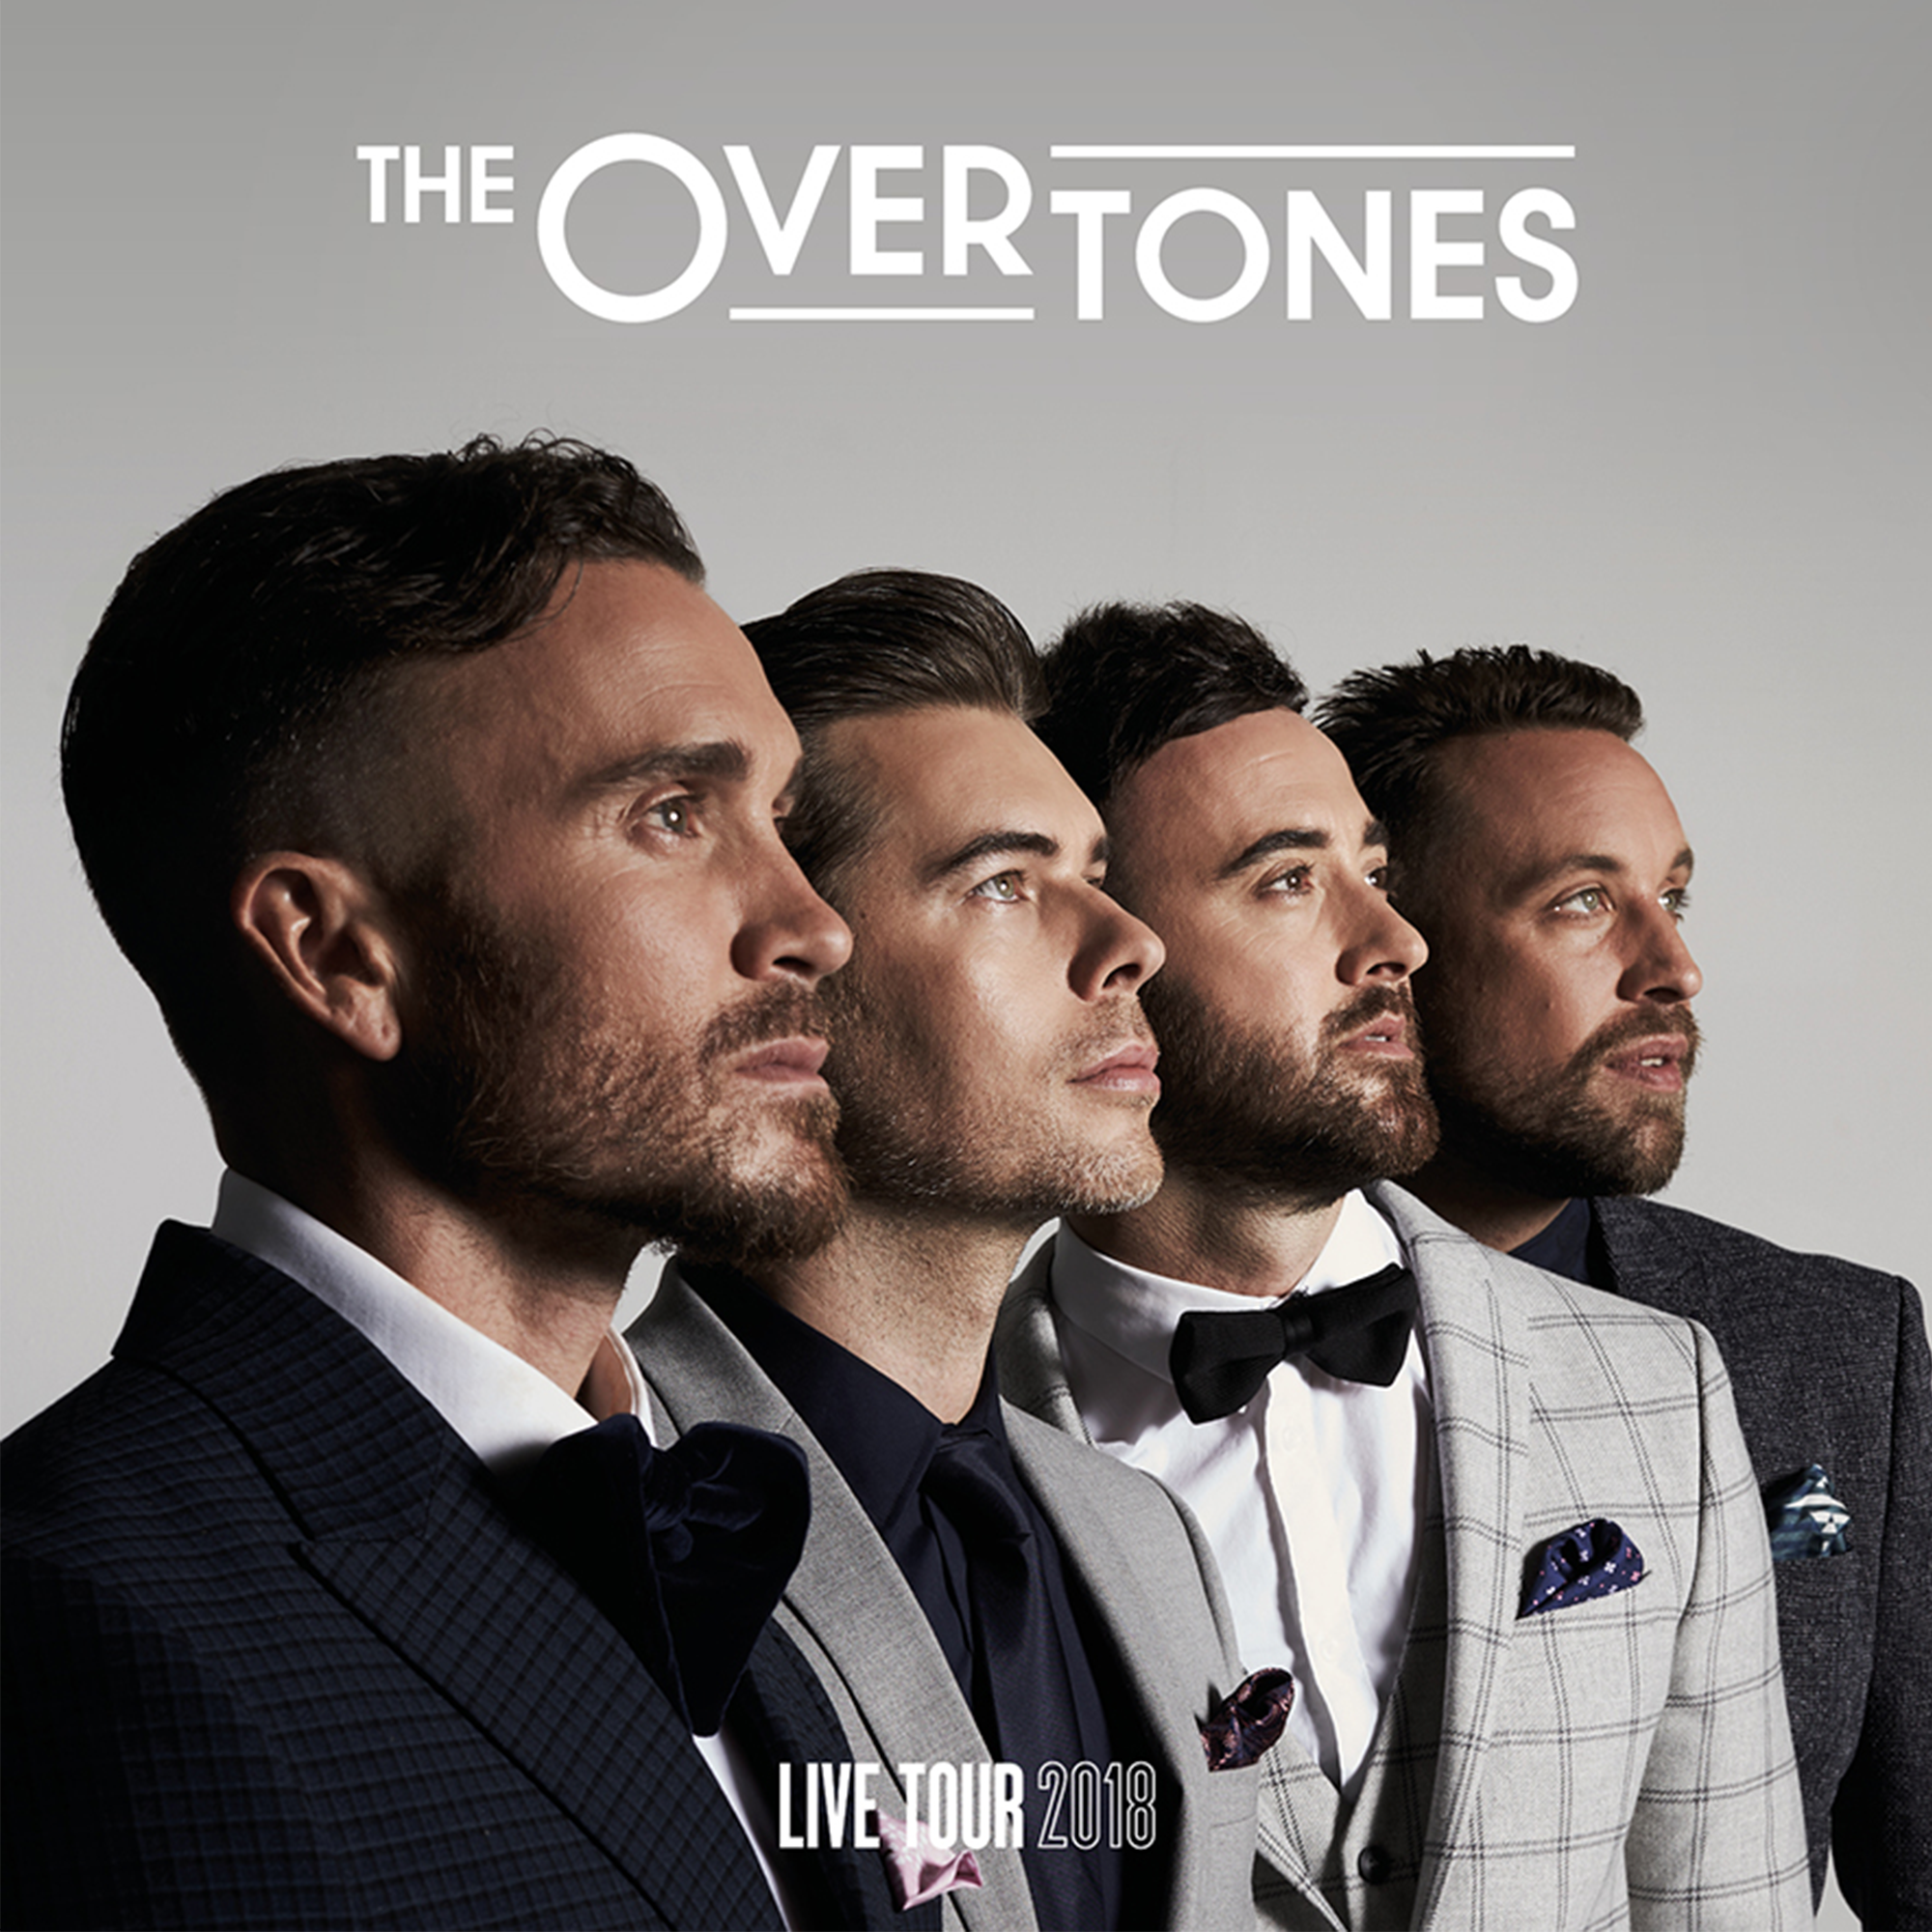 Signed Tour Brochure - The Overtones